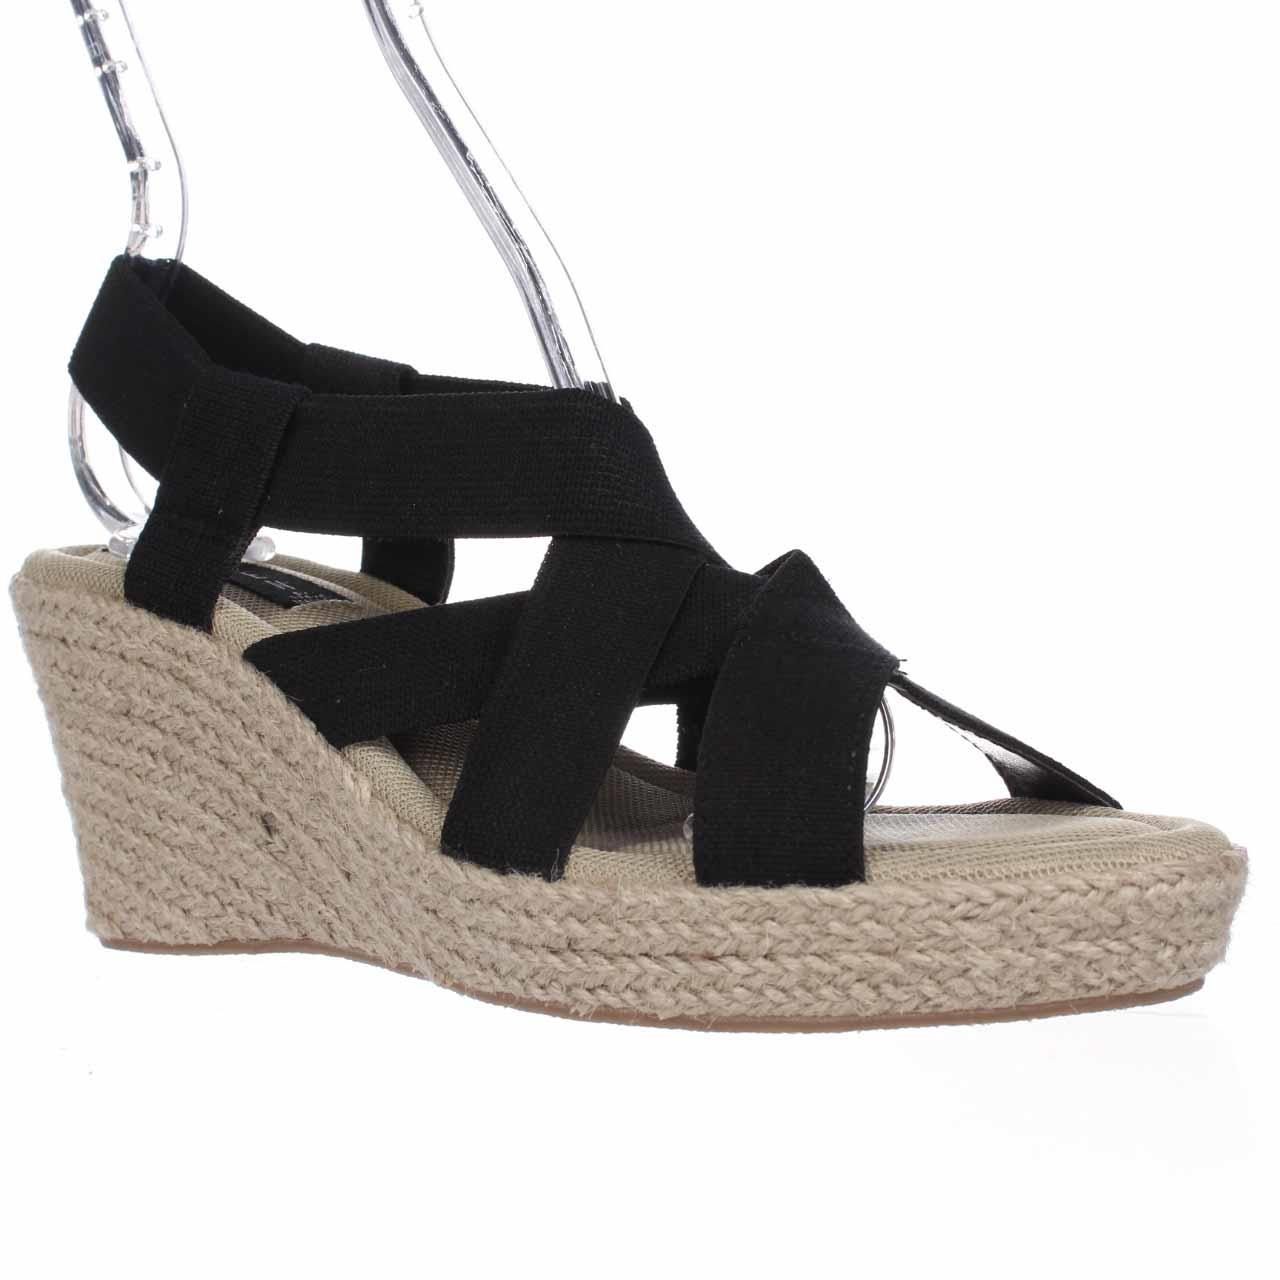 Womens STEVEN by Steve Madden Janenn Espadrille Wedge Sandals, Black